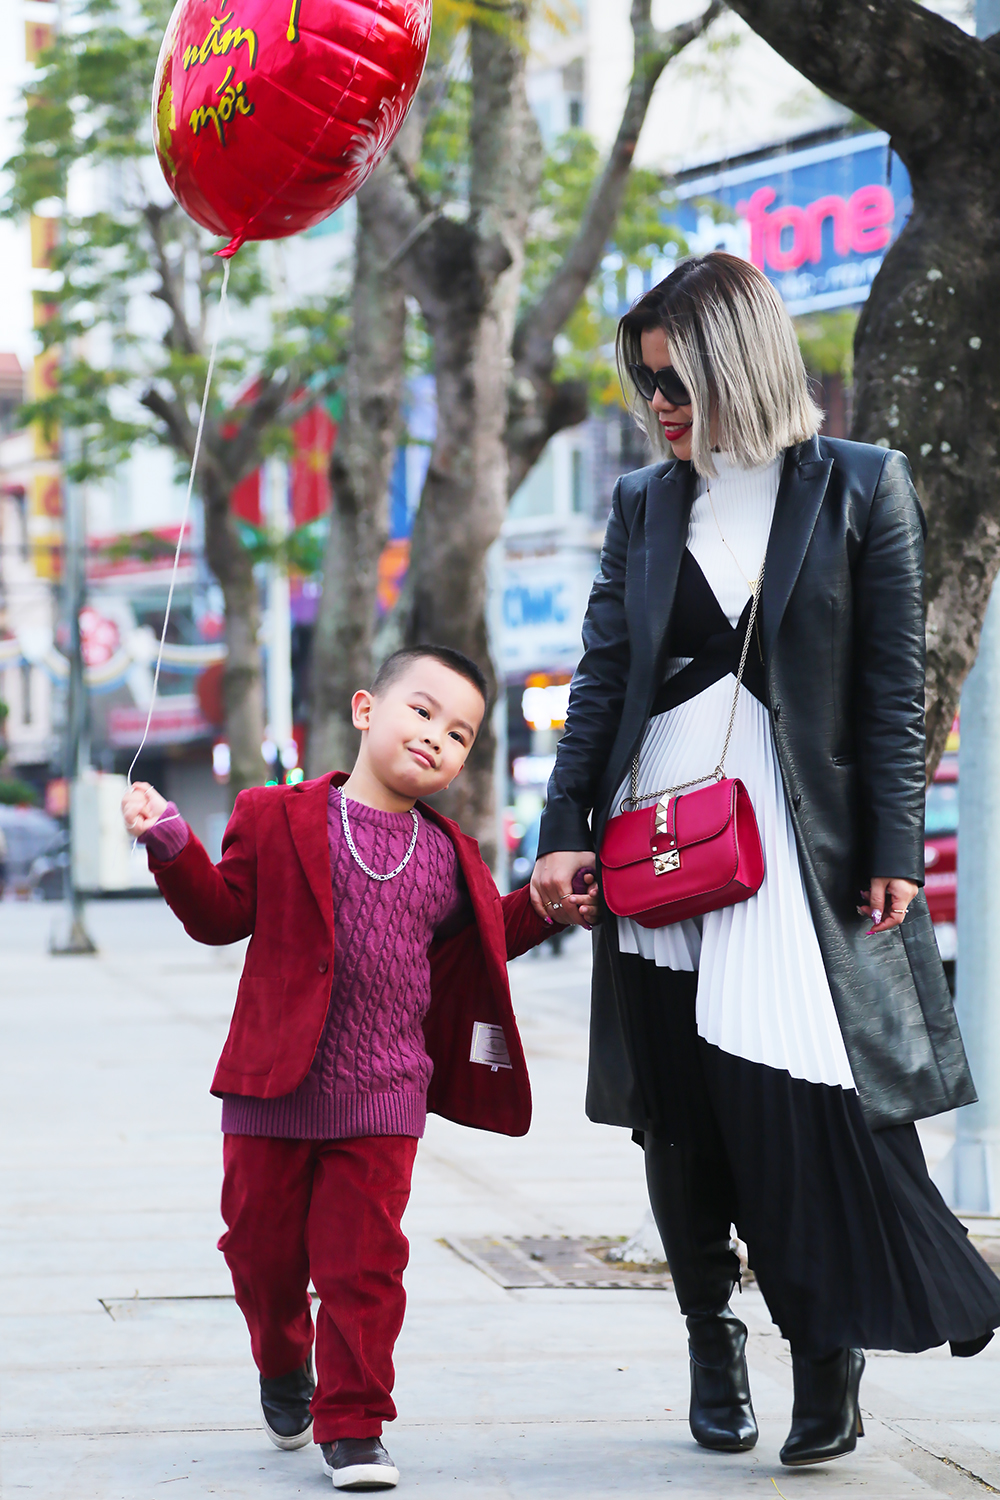 Crystal Phuong- Singapore Fashion Blogger- Streetstyle photoshoot with Miu, cute kid